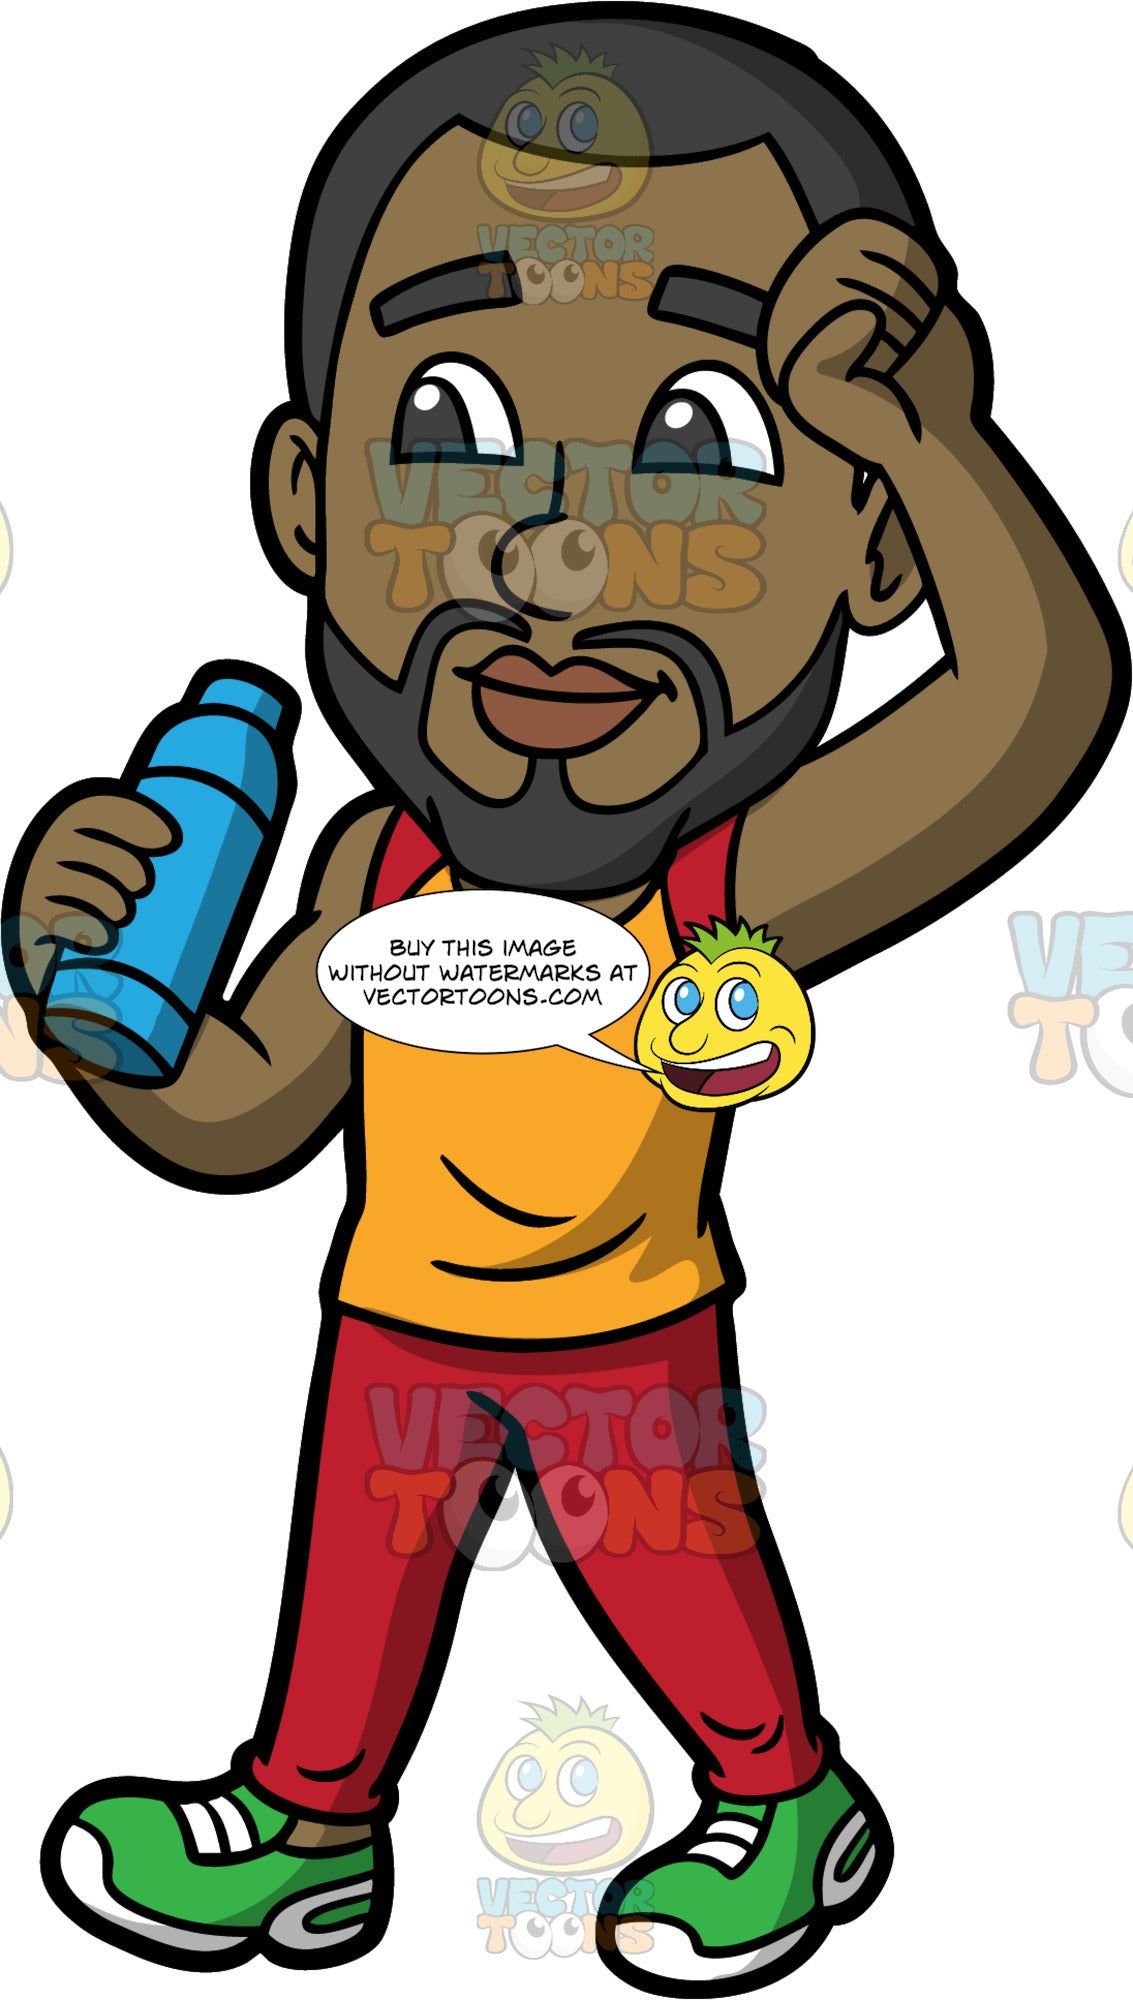 Calvin Walking For Exercise. A black man with a beard wearing red track pants, an orange with red tank top, and green running shoes, holding a blue water bottle while going on a walk